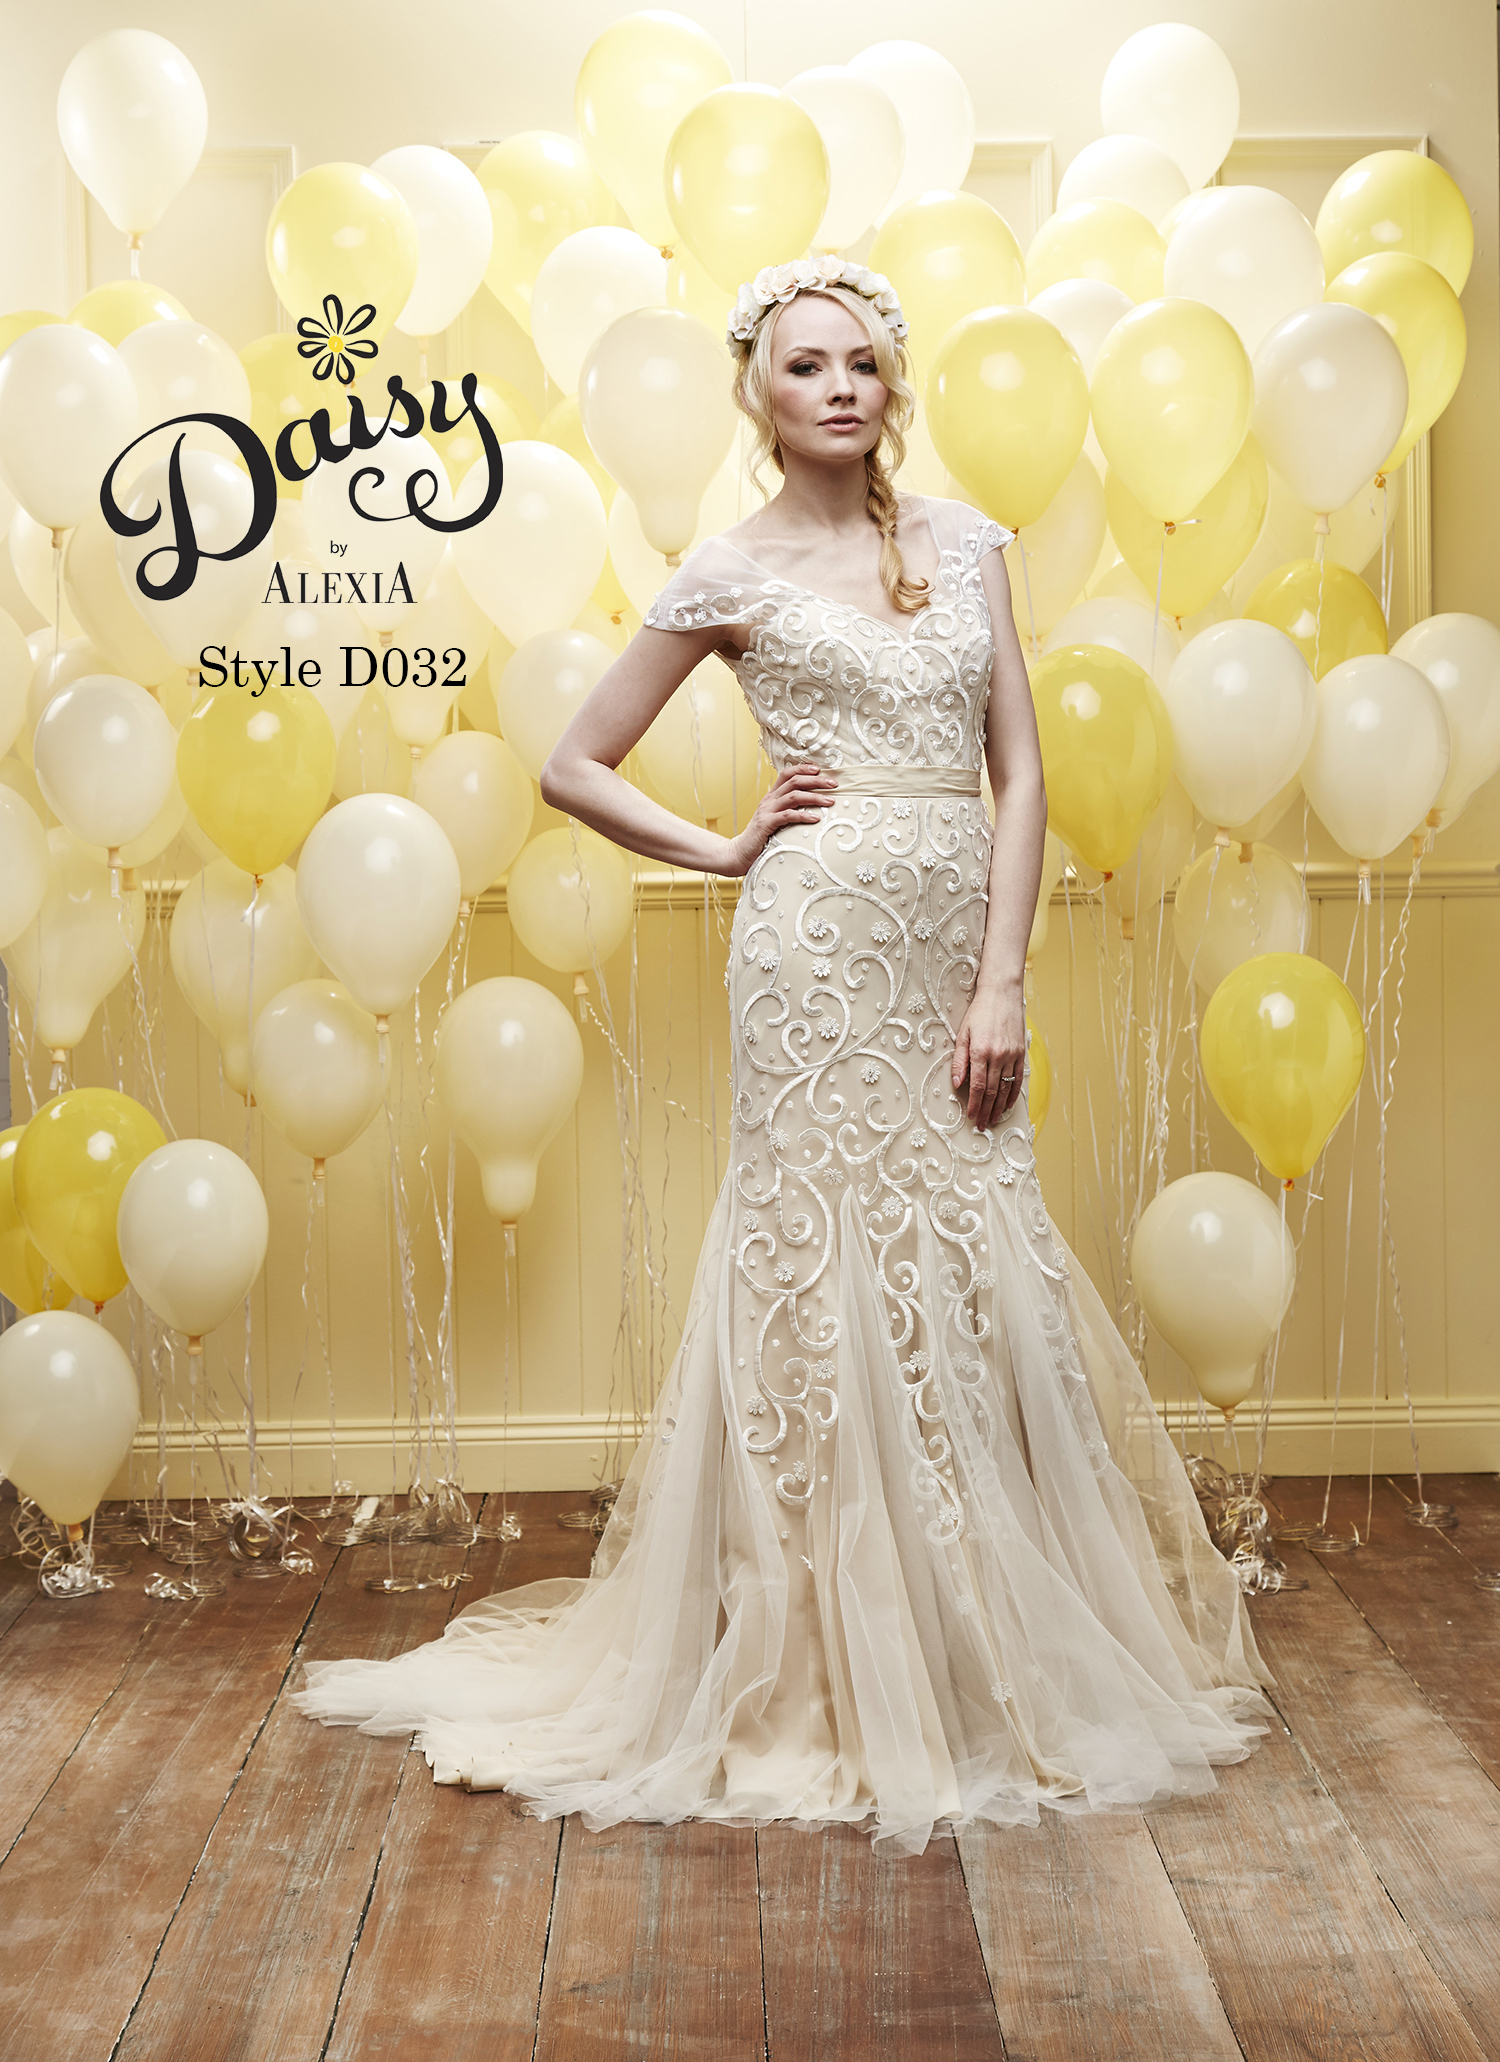 Daisy by Alexia Designs Collection Gallery – Champagne And Strawberries